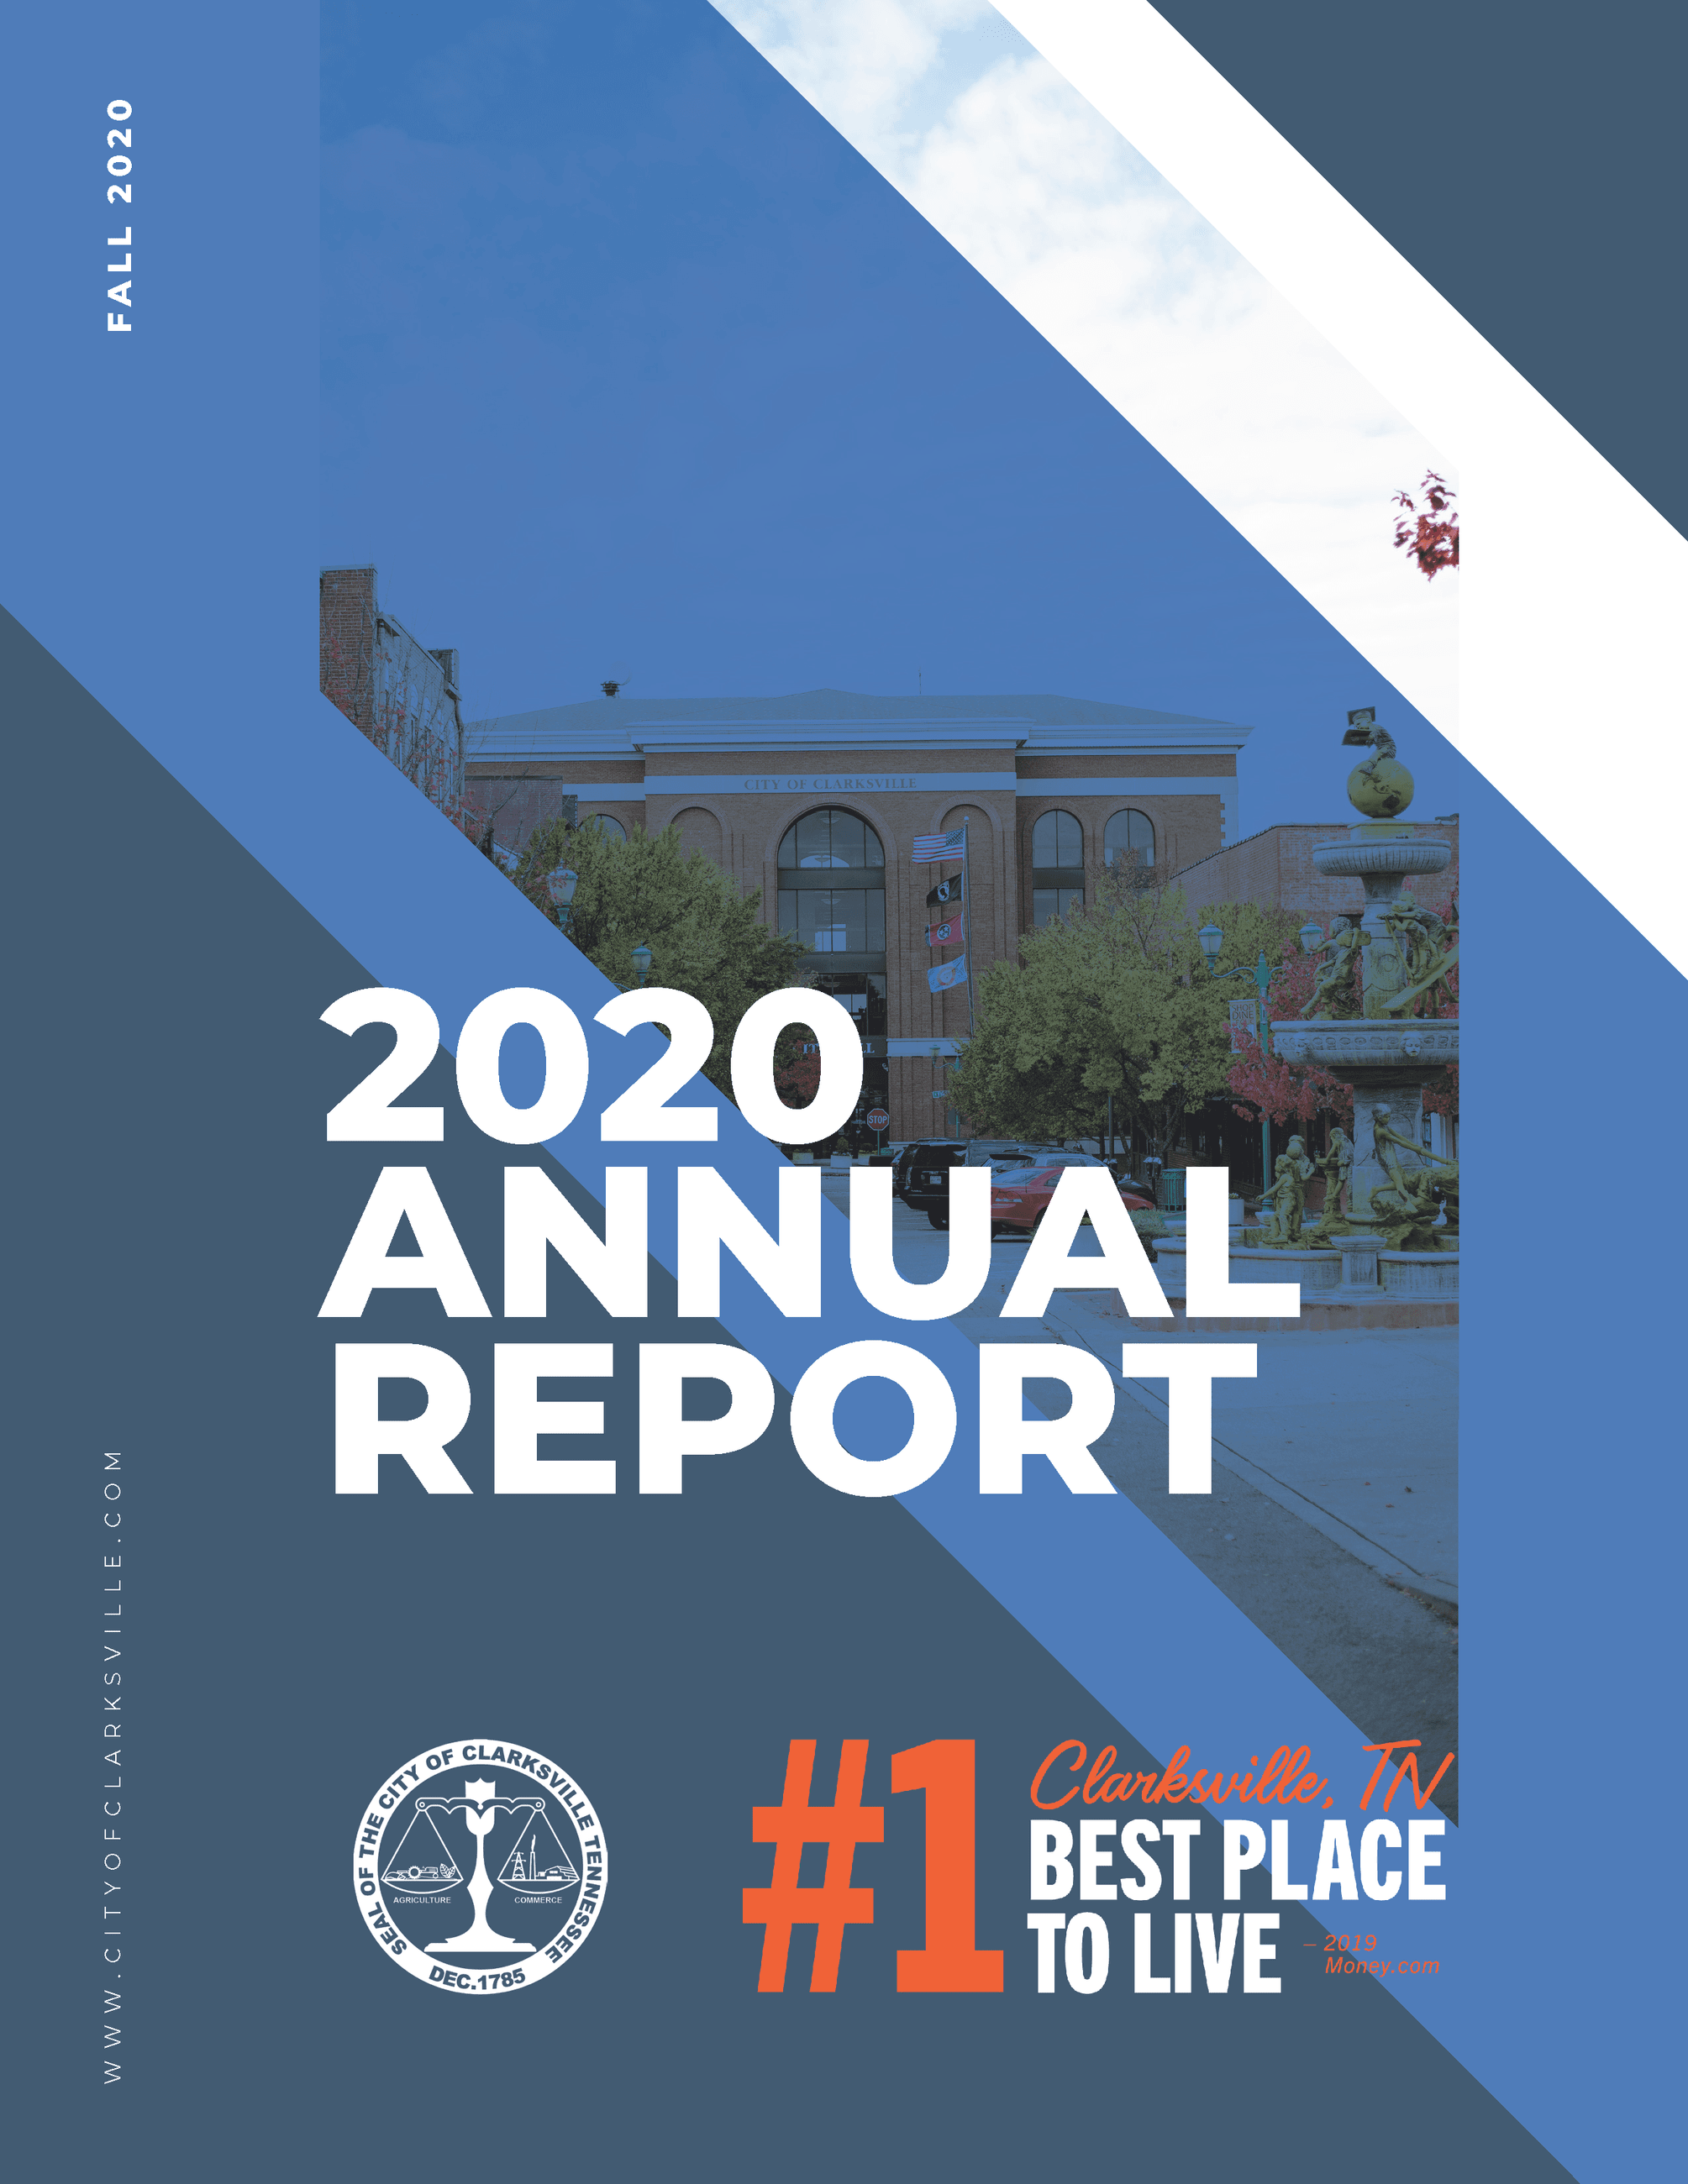 2020 Annual Report Cover